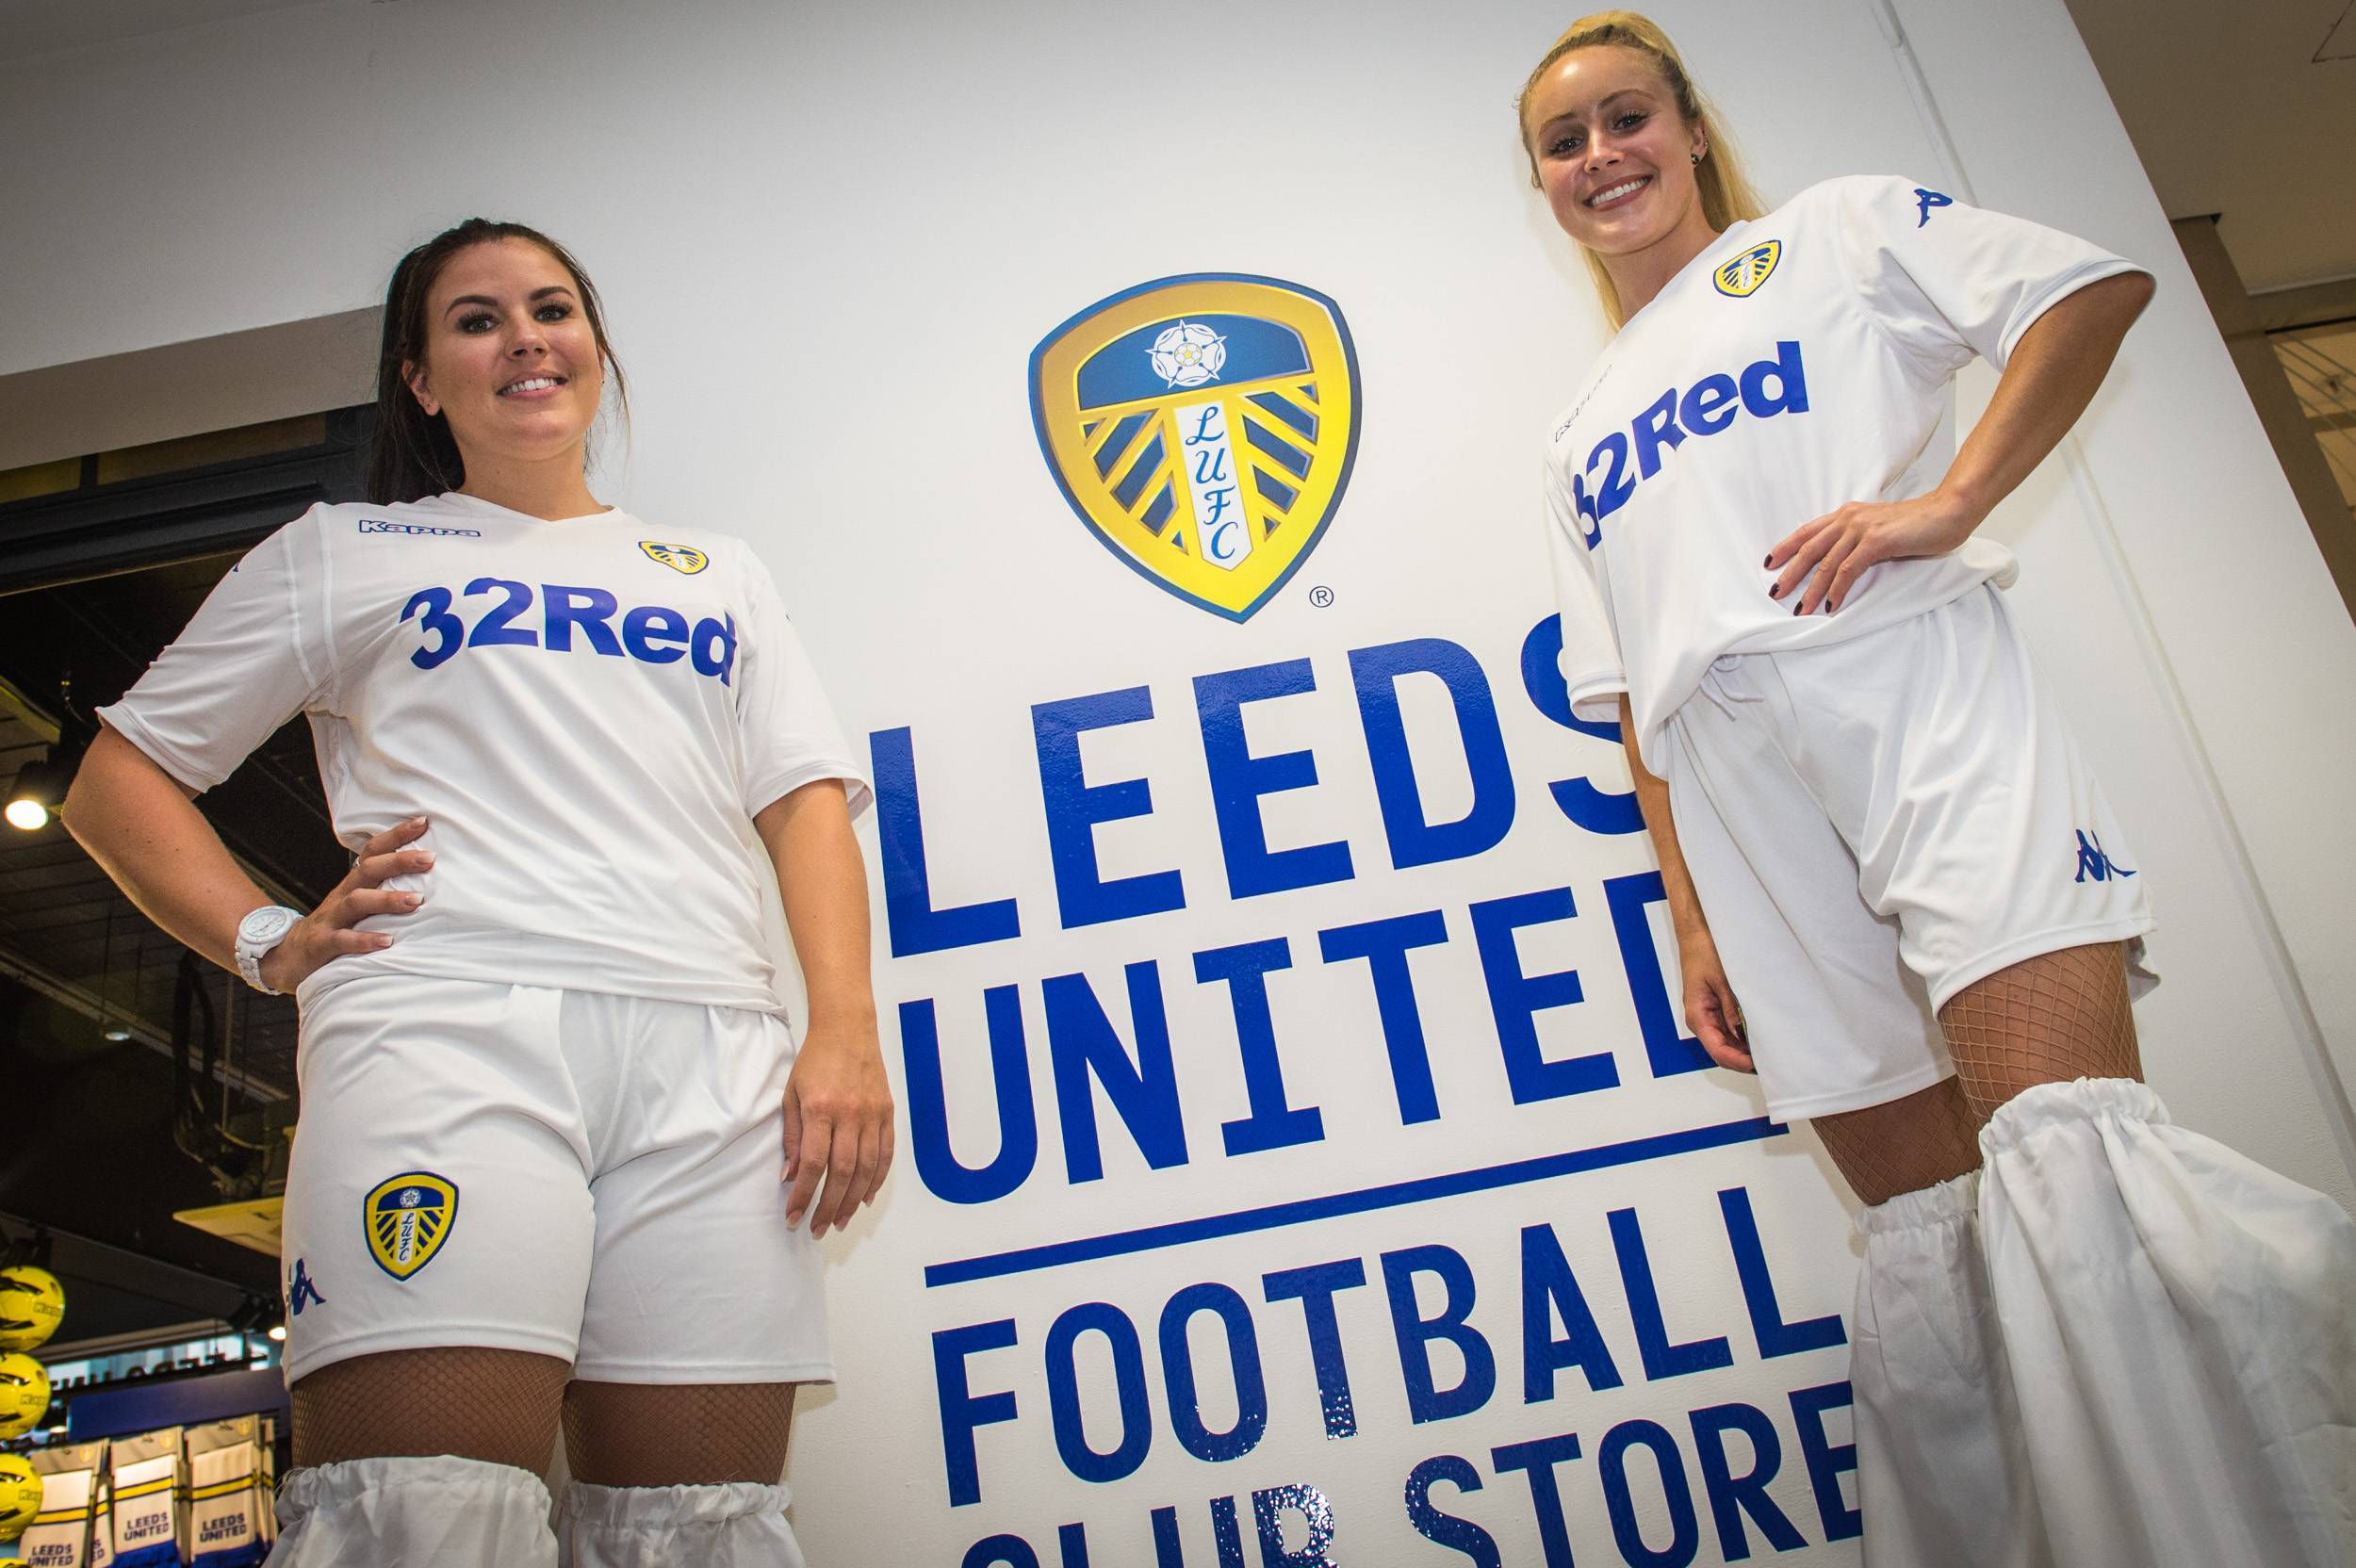 487b54dae 2018 19 HOME KIT LAUNCH SUCCESS - Leeds United